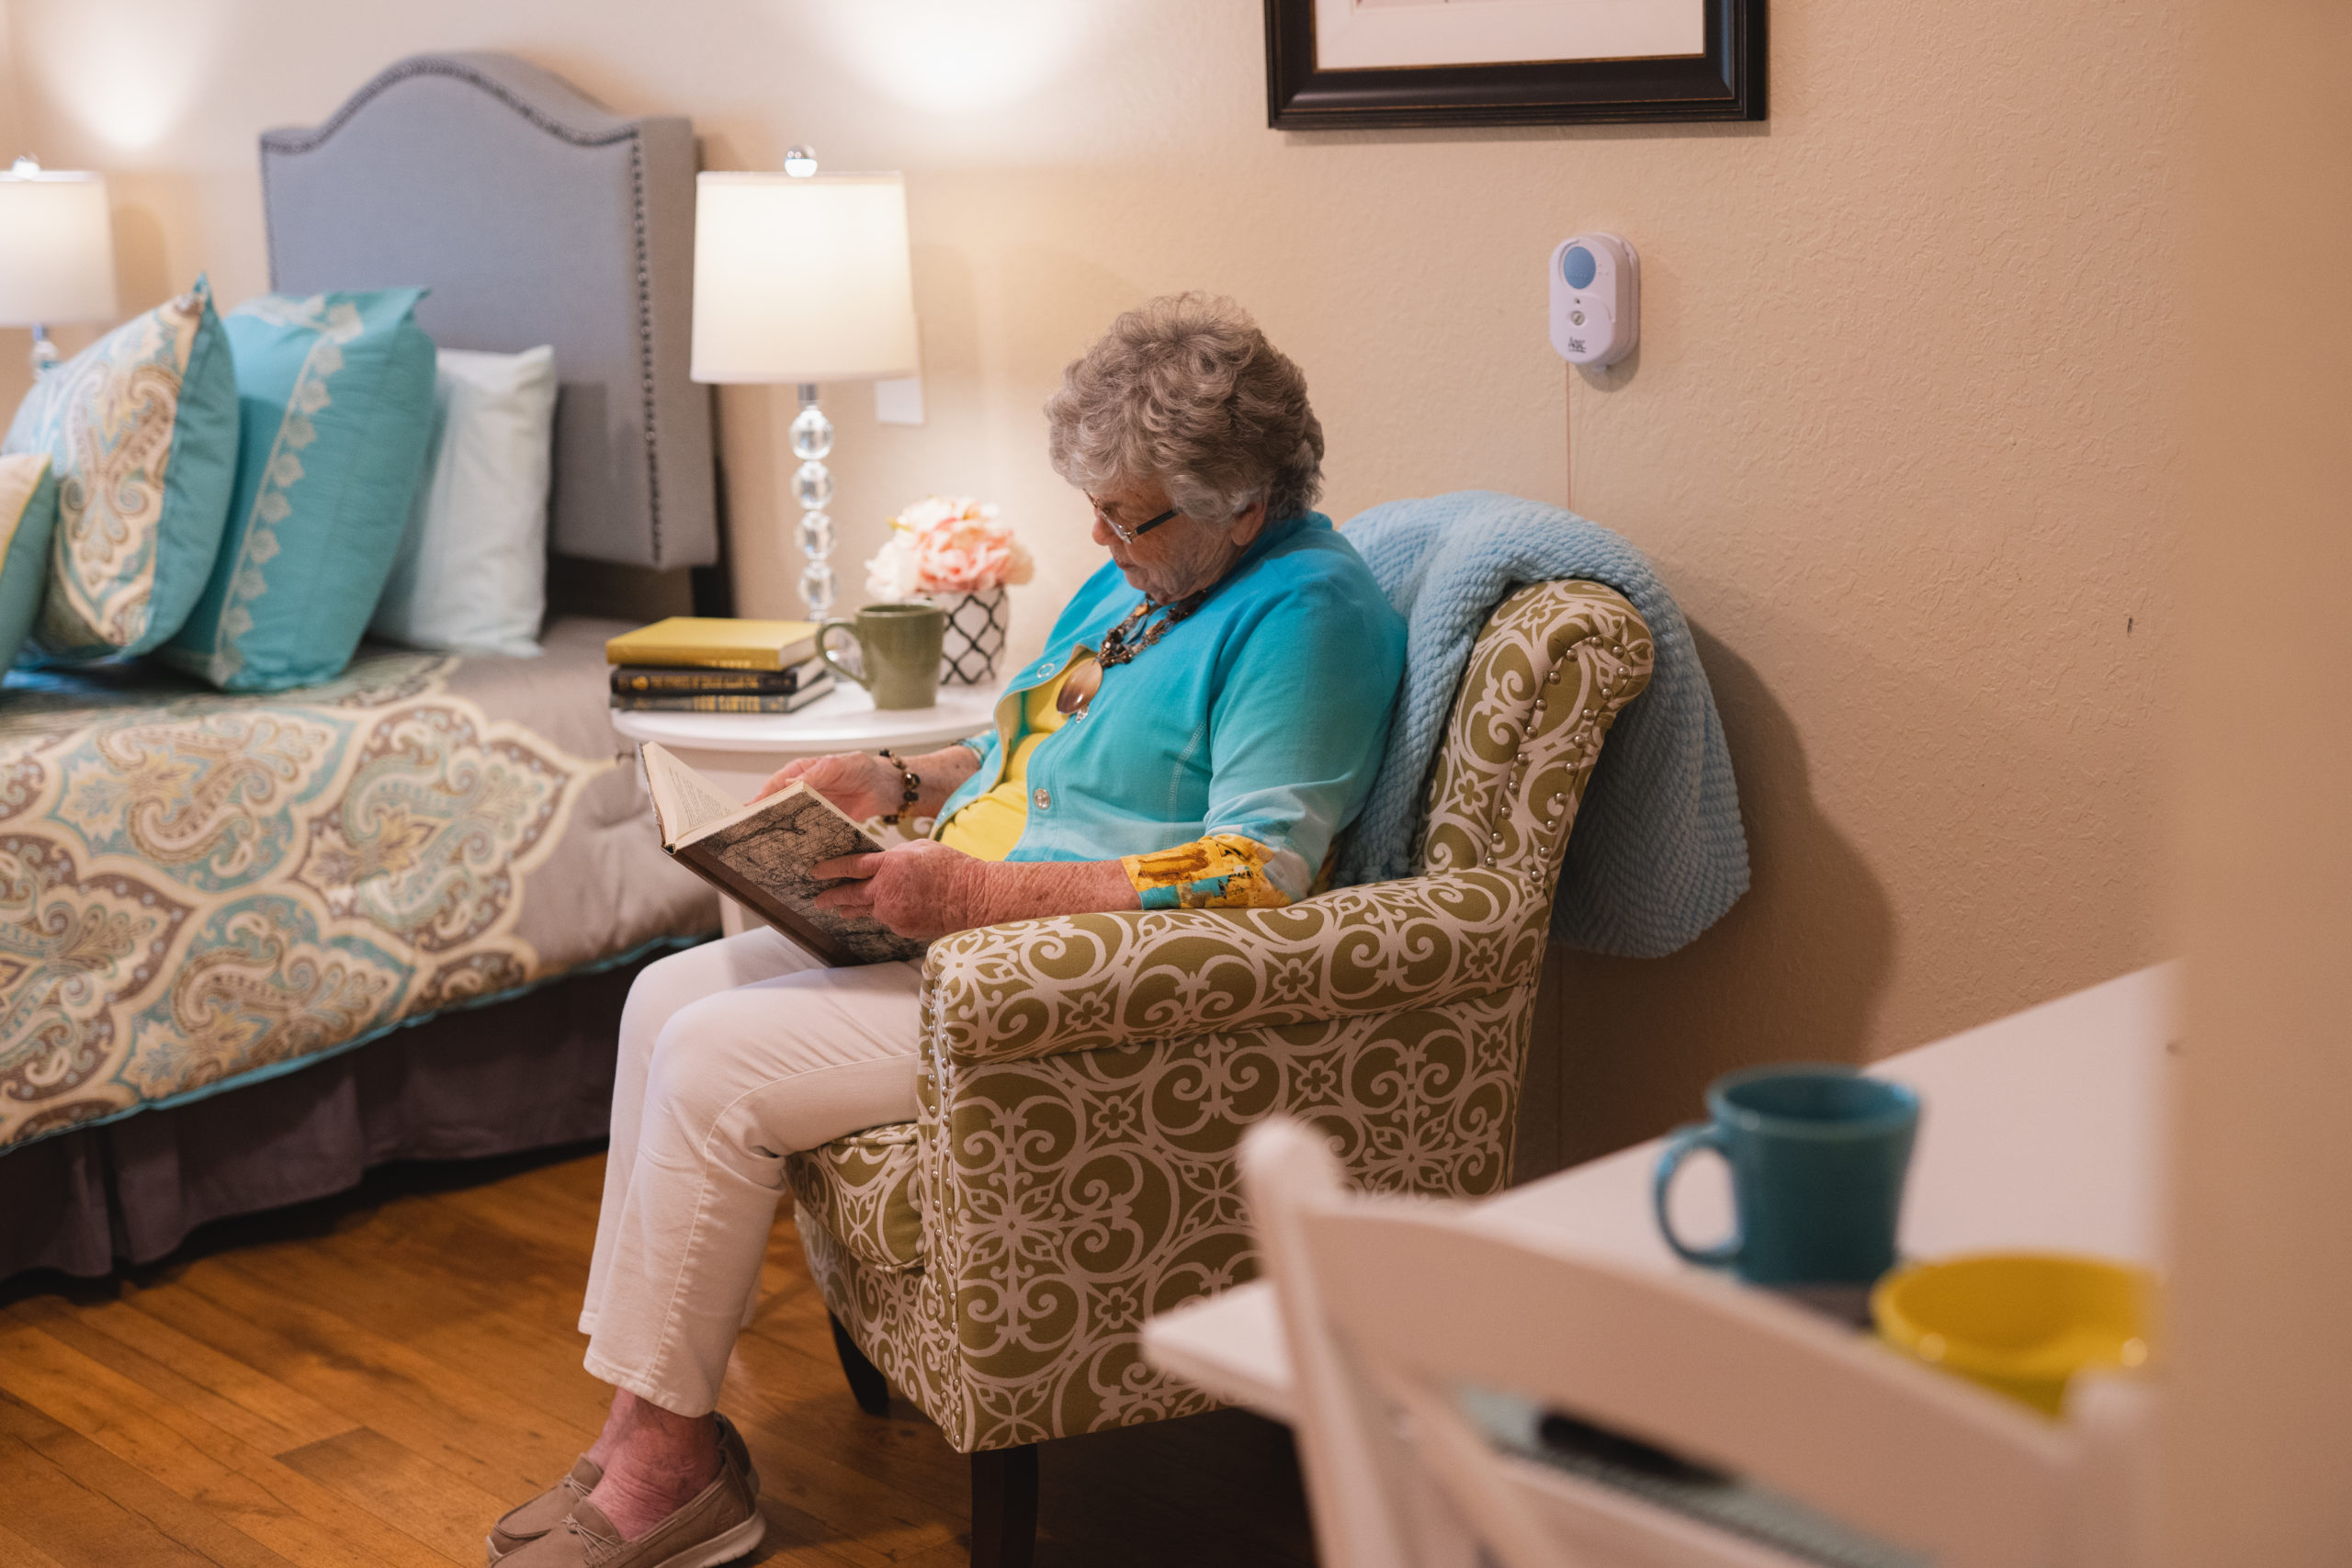 Overcoming Social Isolation During COVID-19